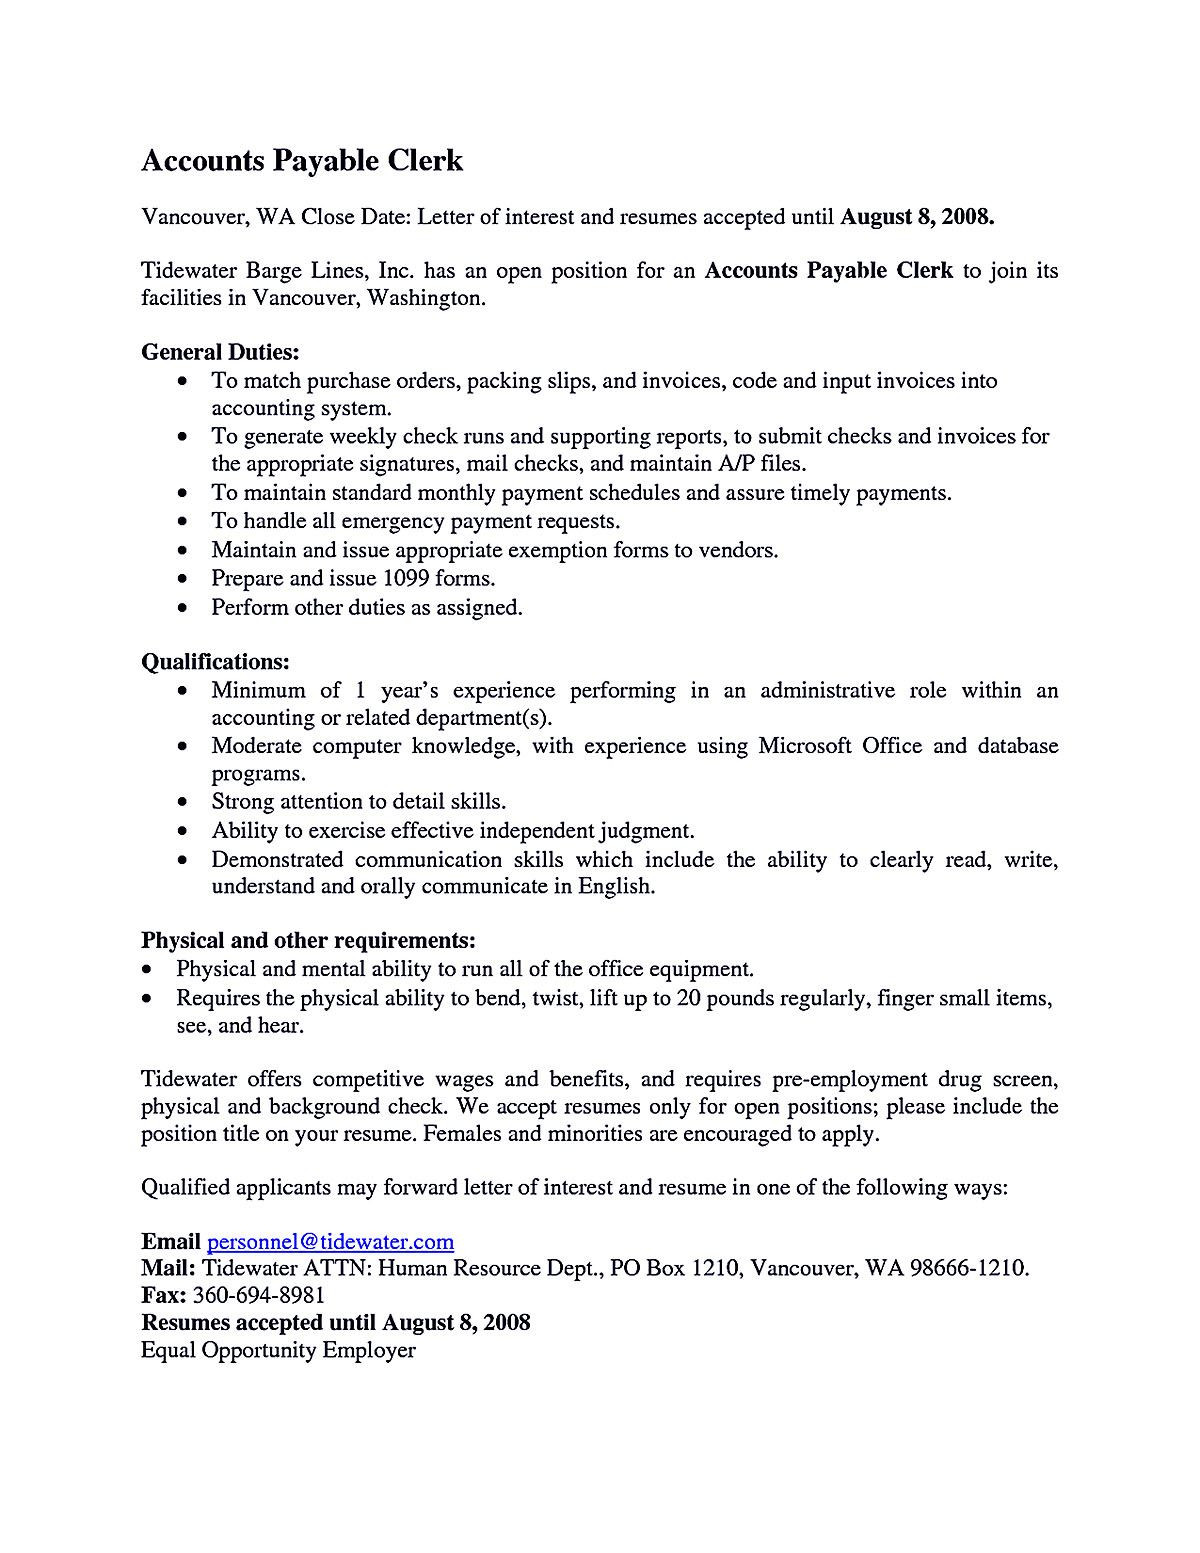 Sample Of Communication Skills In Resume Resume Templates Interpersonal Skills - Sample Phrases and Suggestions